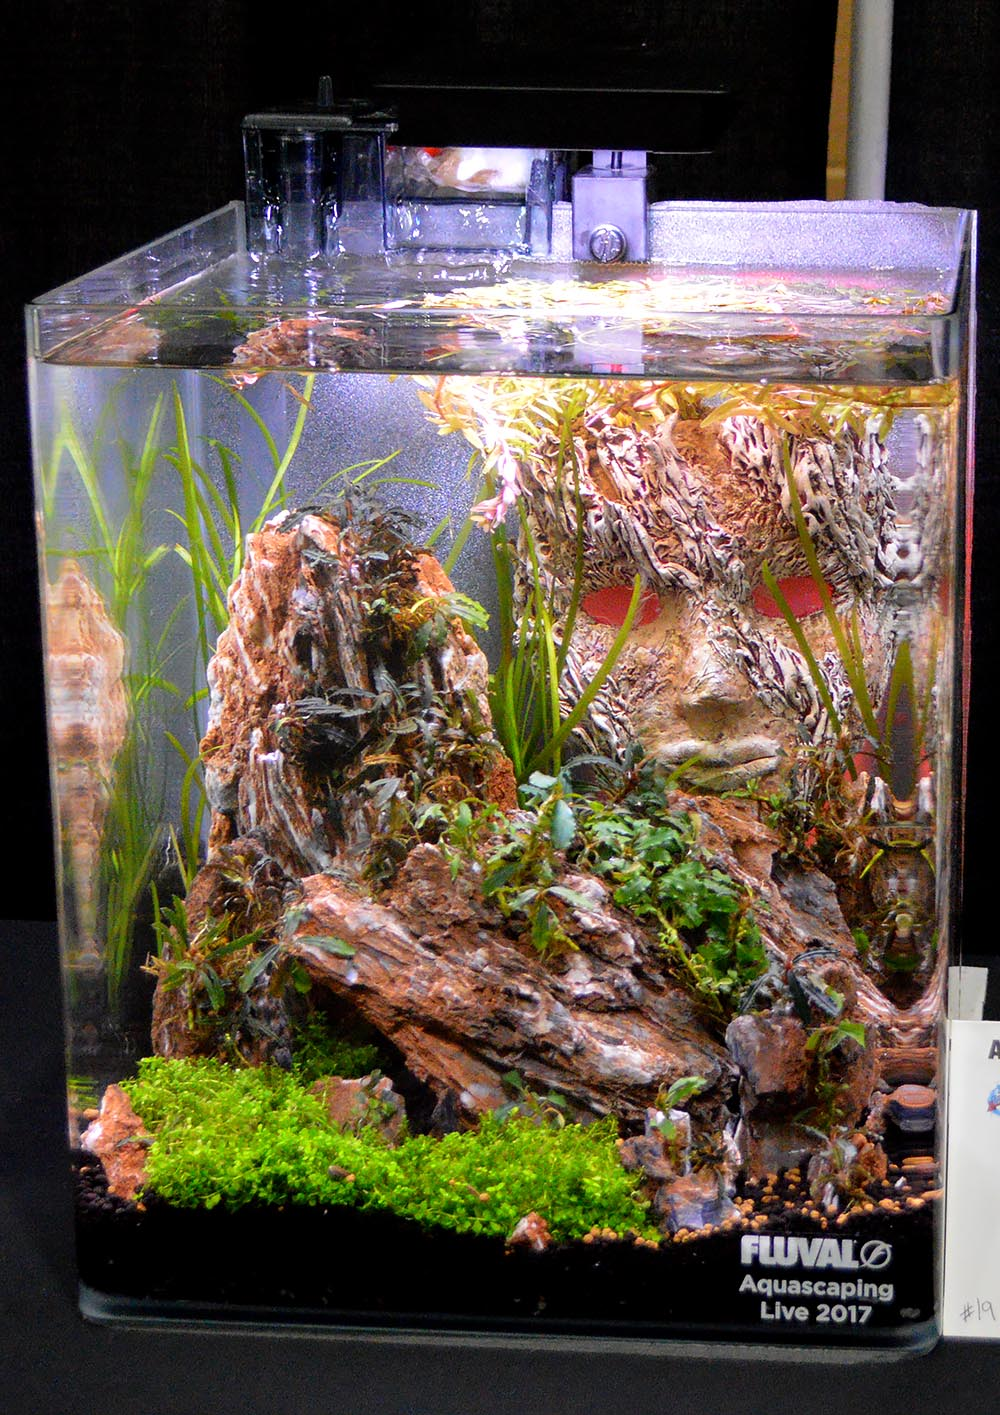 A second look at Sean Peck's entry, with a subtle difference noticed the second day. Lighting seems to be playing an important role in aquascaping these days!